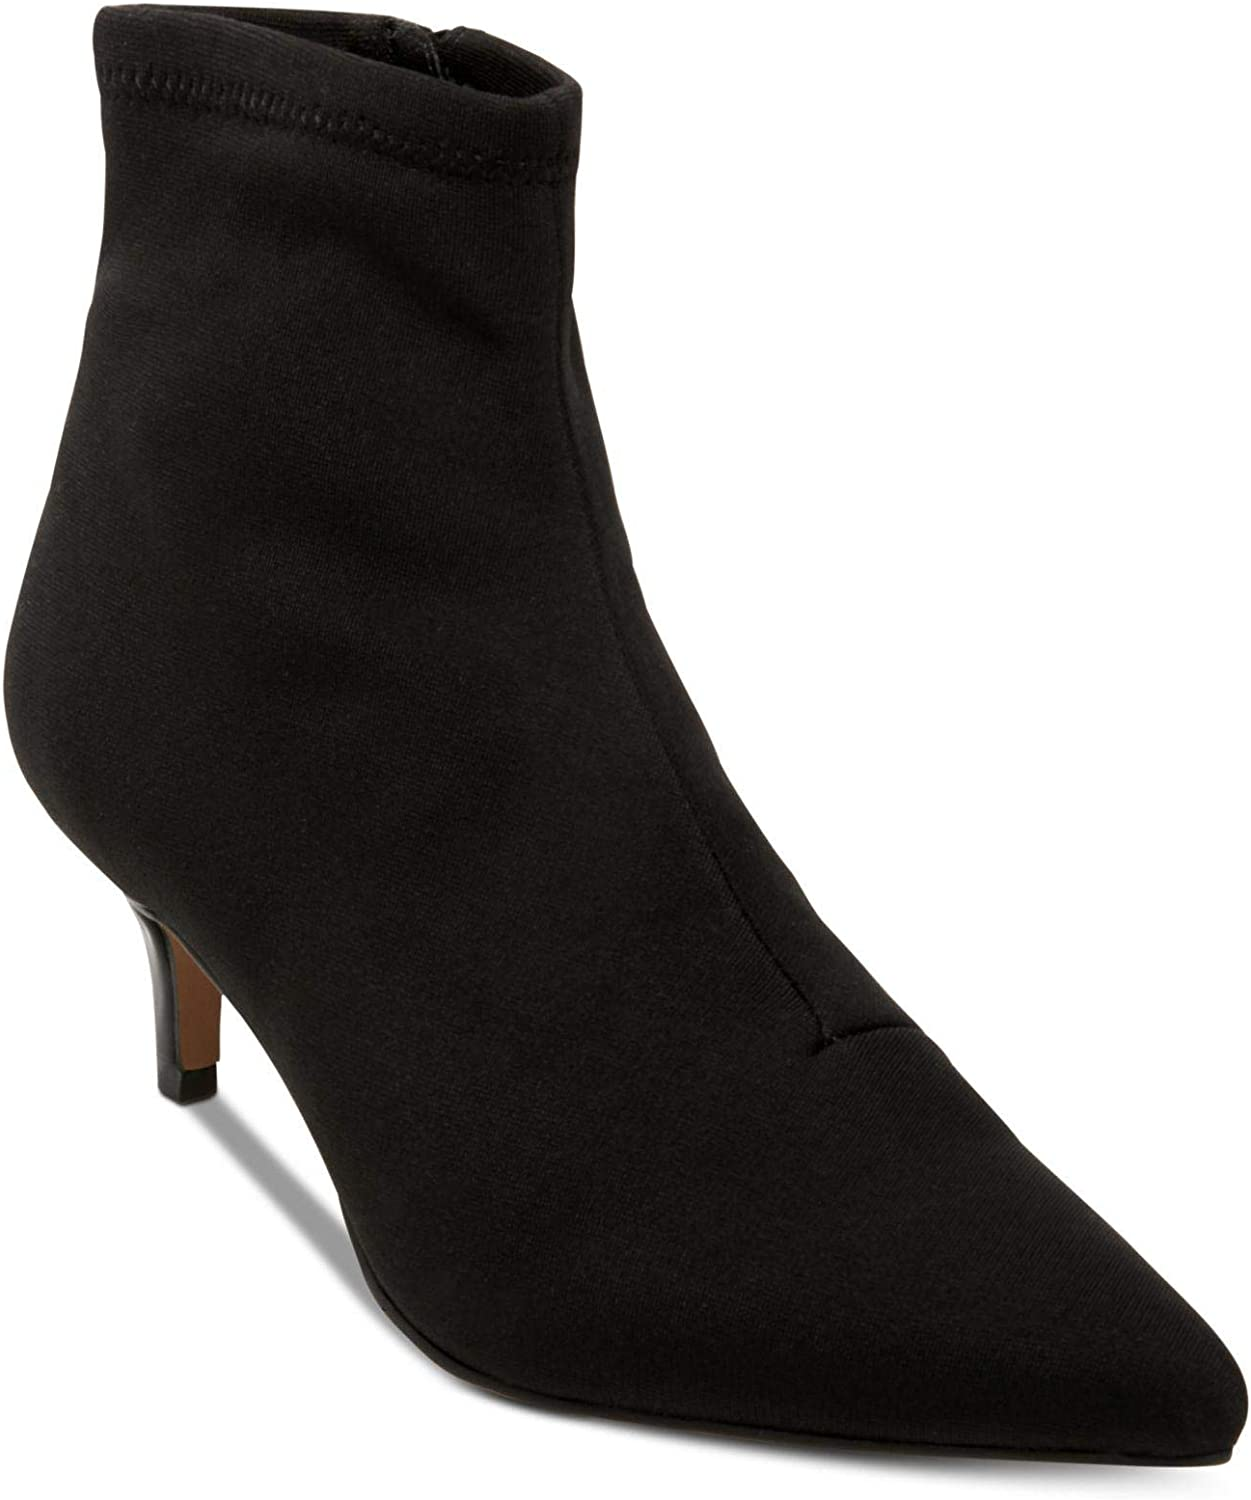 Betsey Johnson Womens Verona Pointed Toe Ankle Fashion Boots